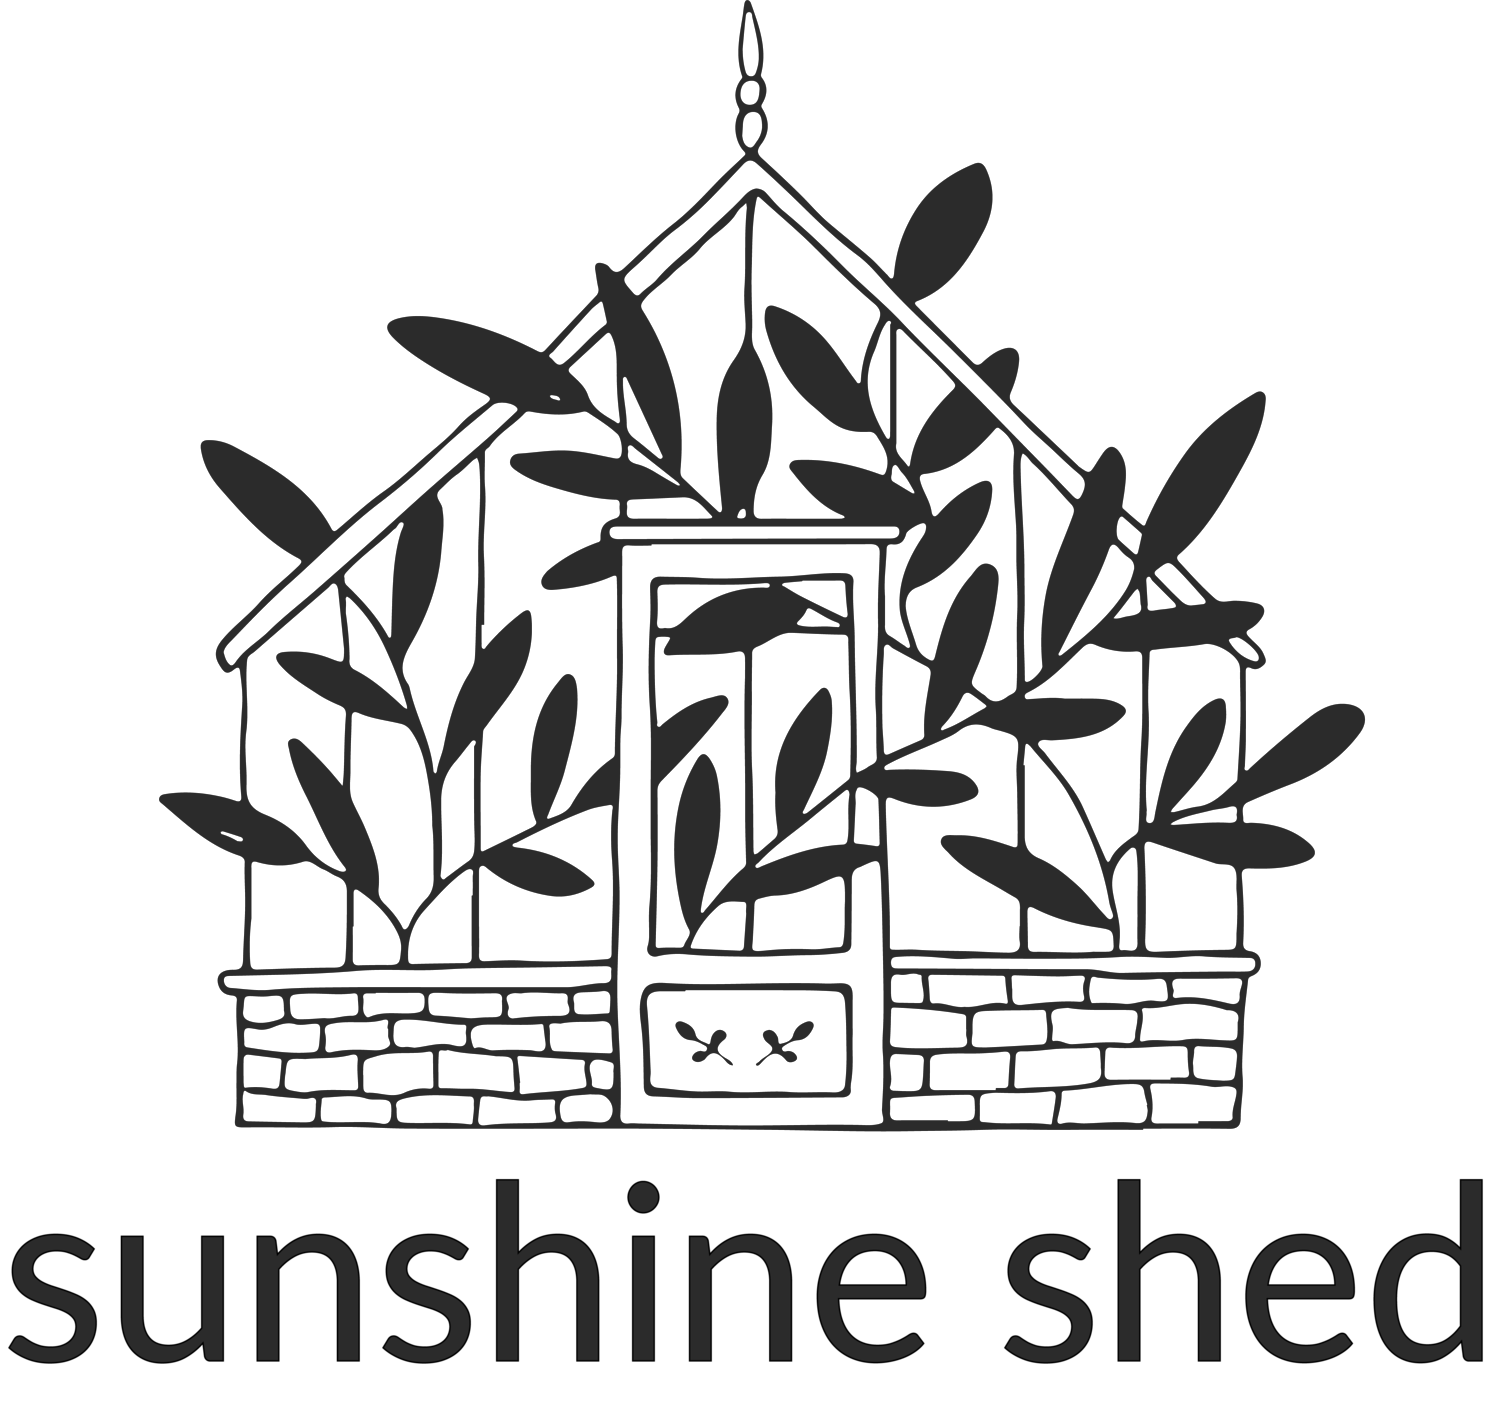 sunshine shed